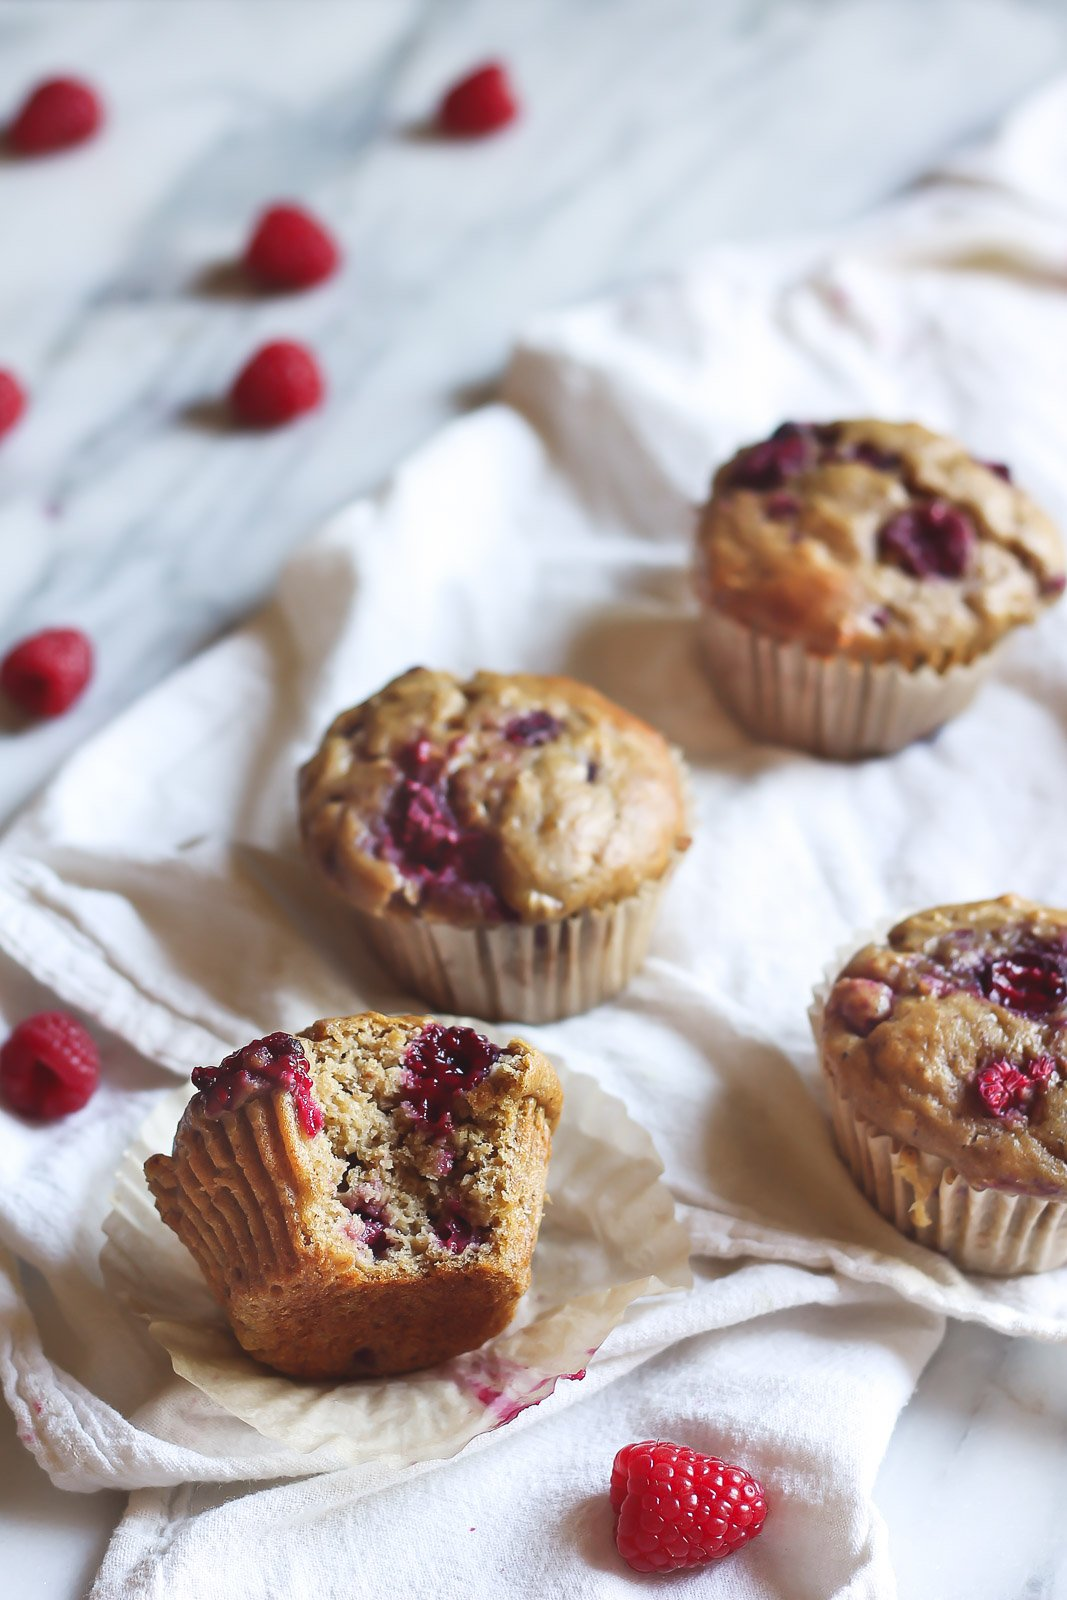 banana oatmeal muffins with raspberries on a linen